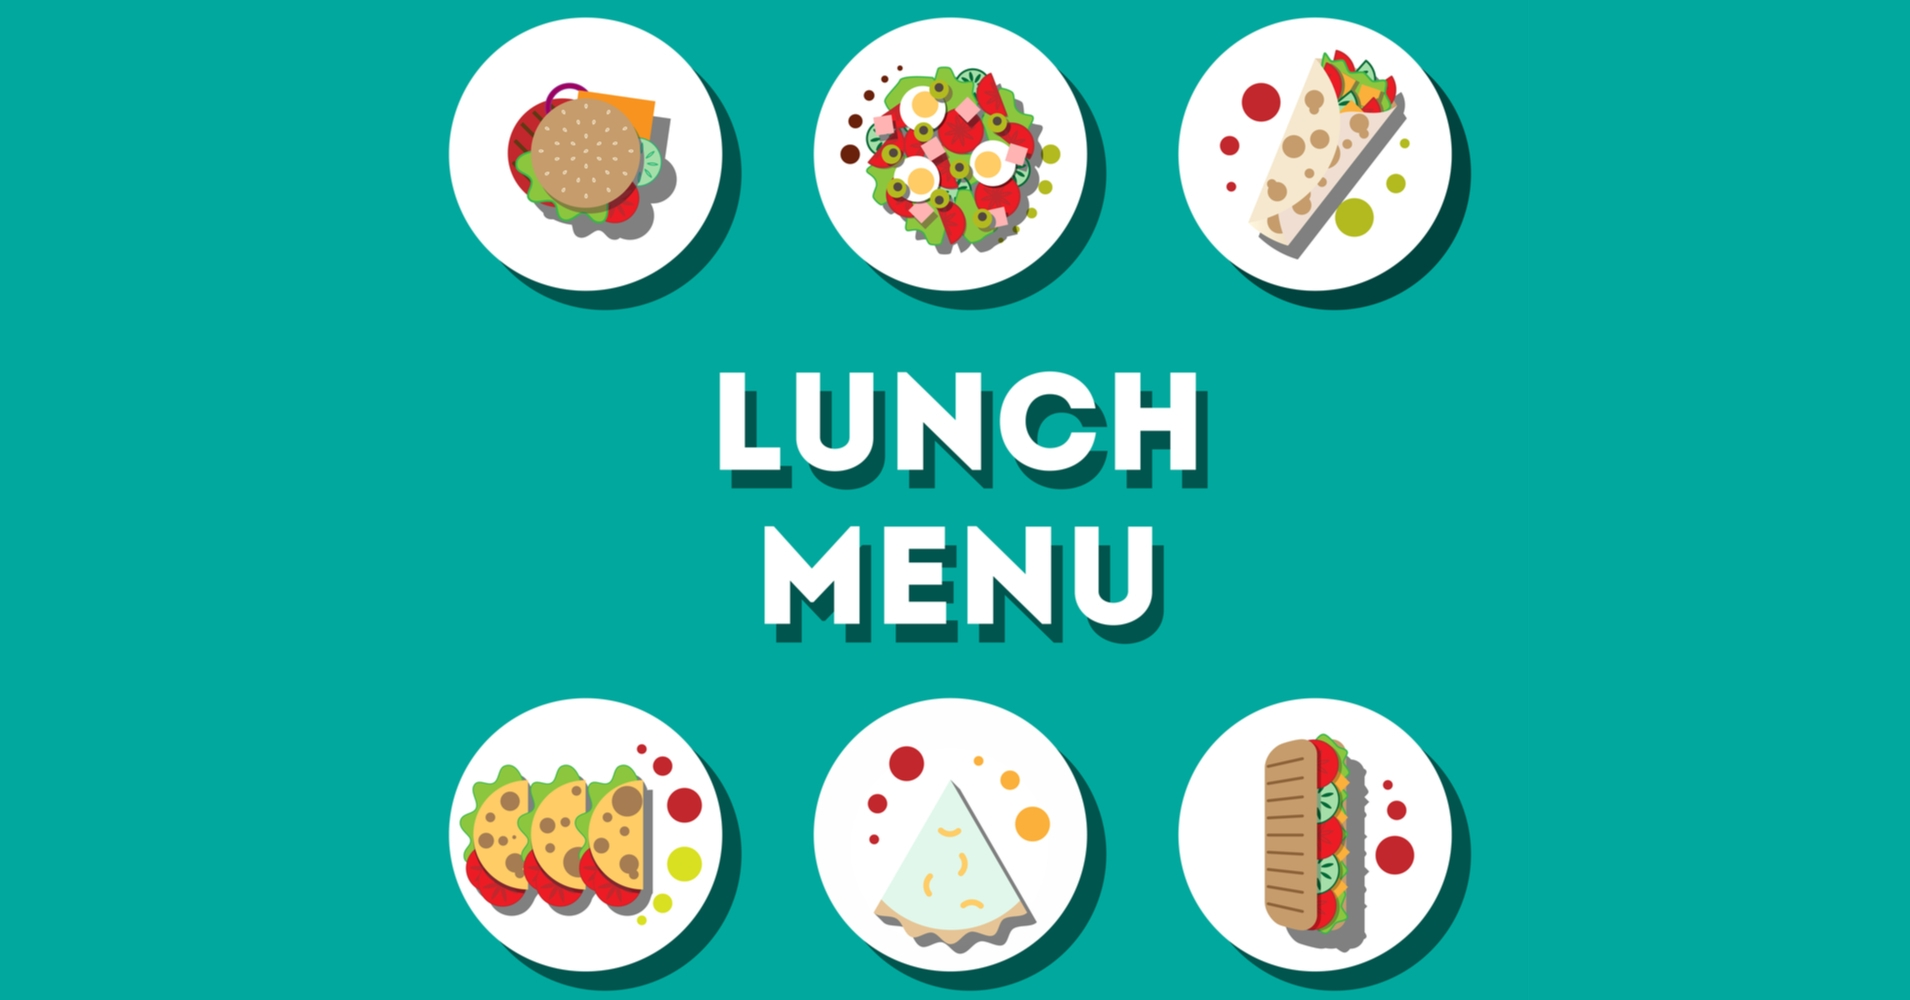 What Should I Buy For Lunch? - Quiz - Quizony.com